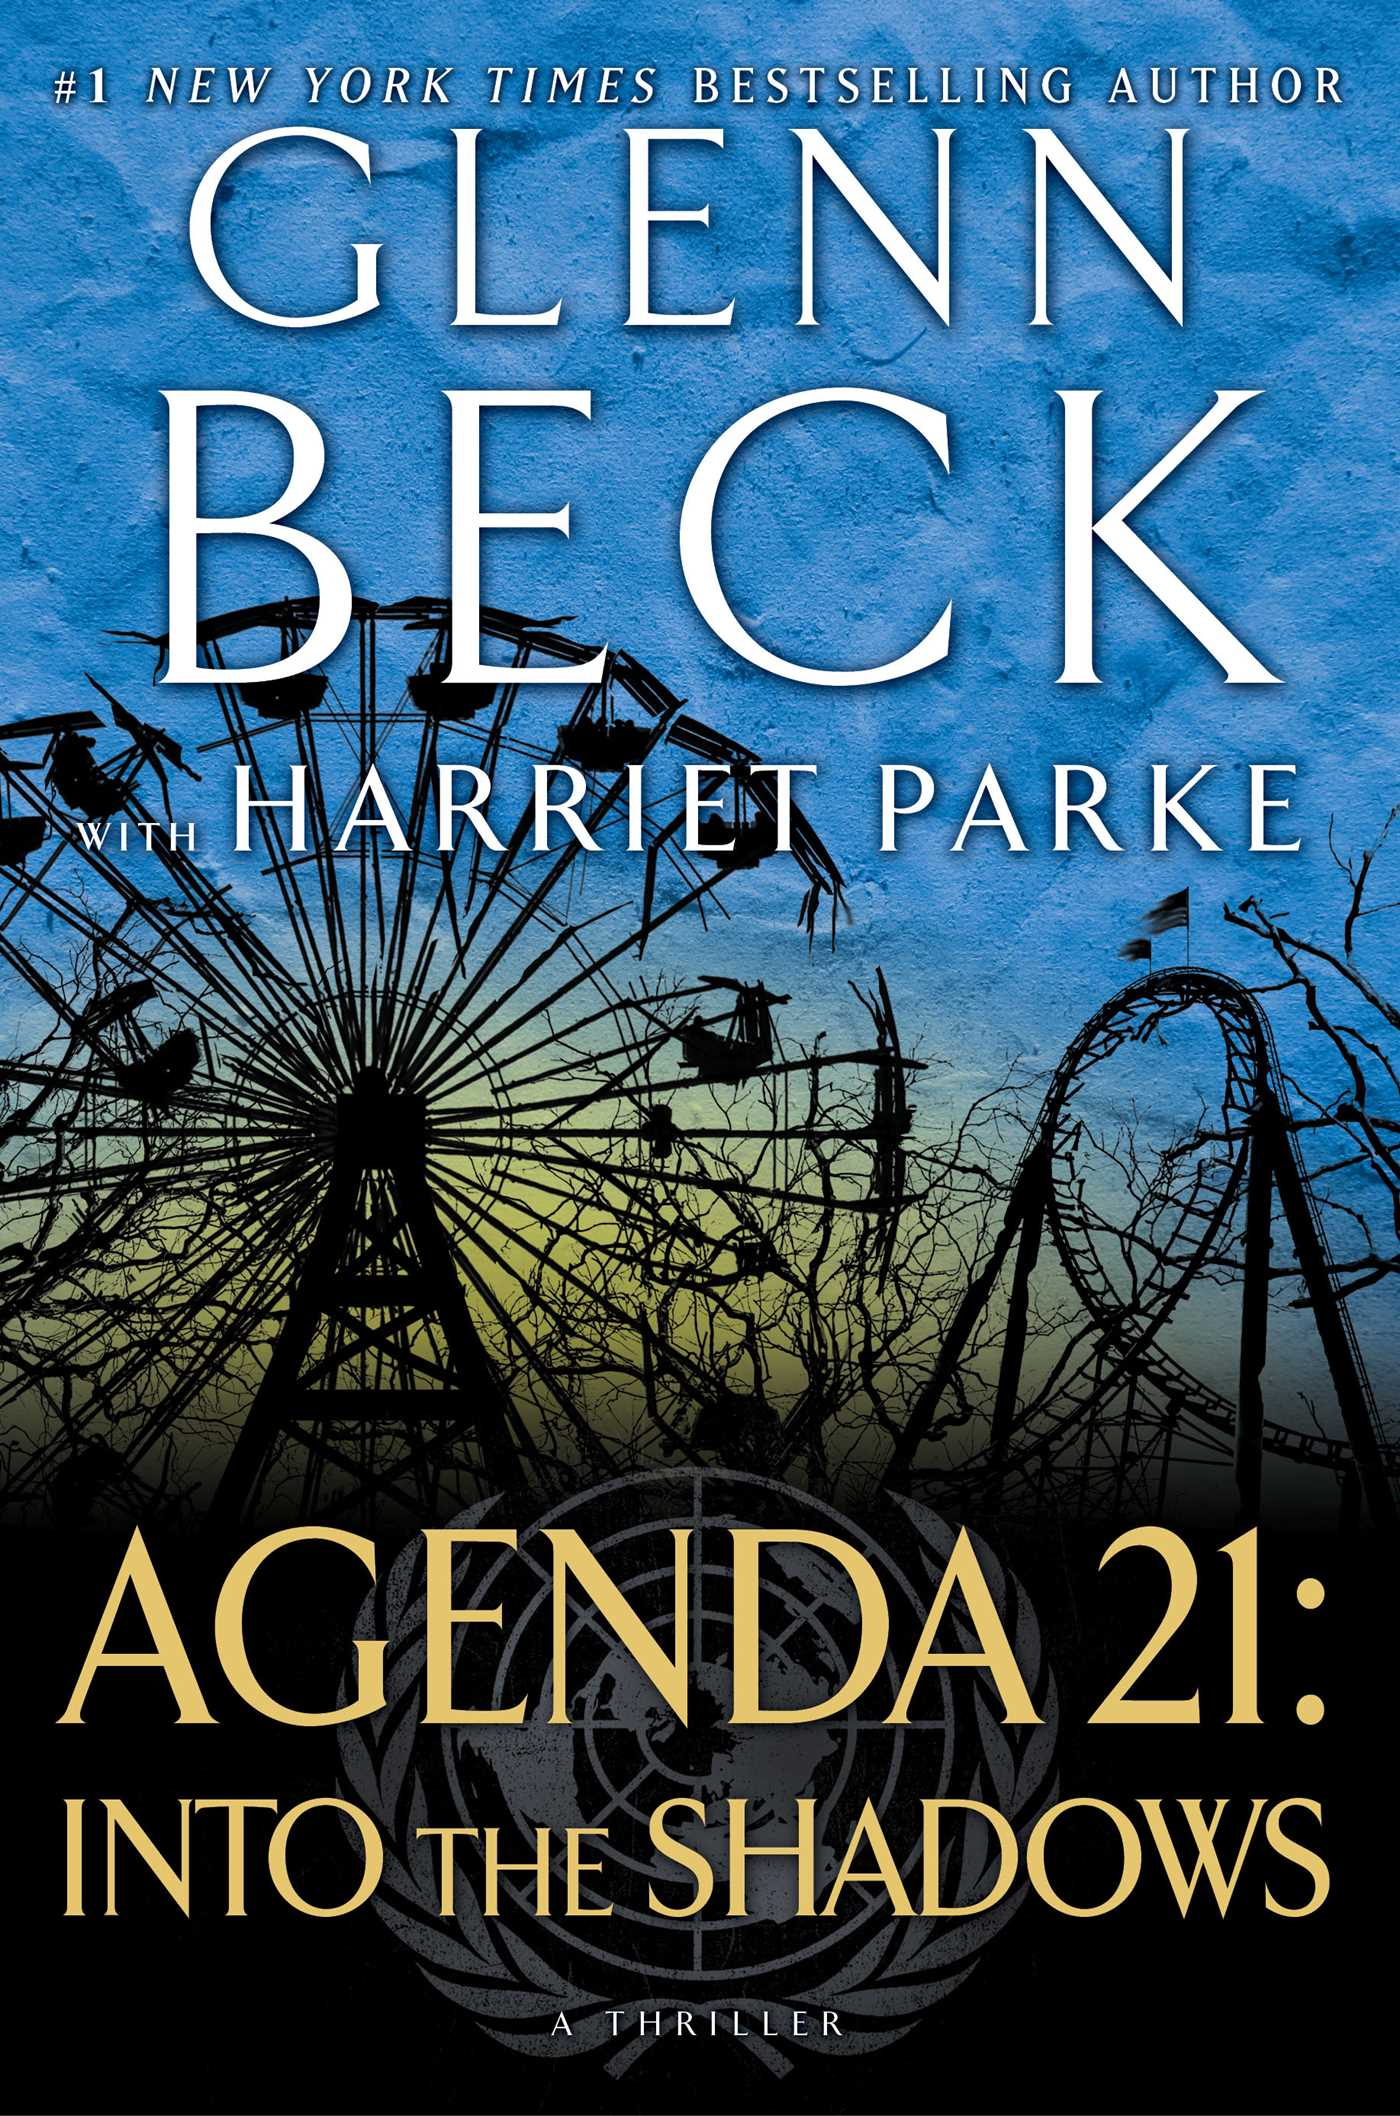 Agenda-21-into-the-shadows-9781476746821_hr